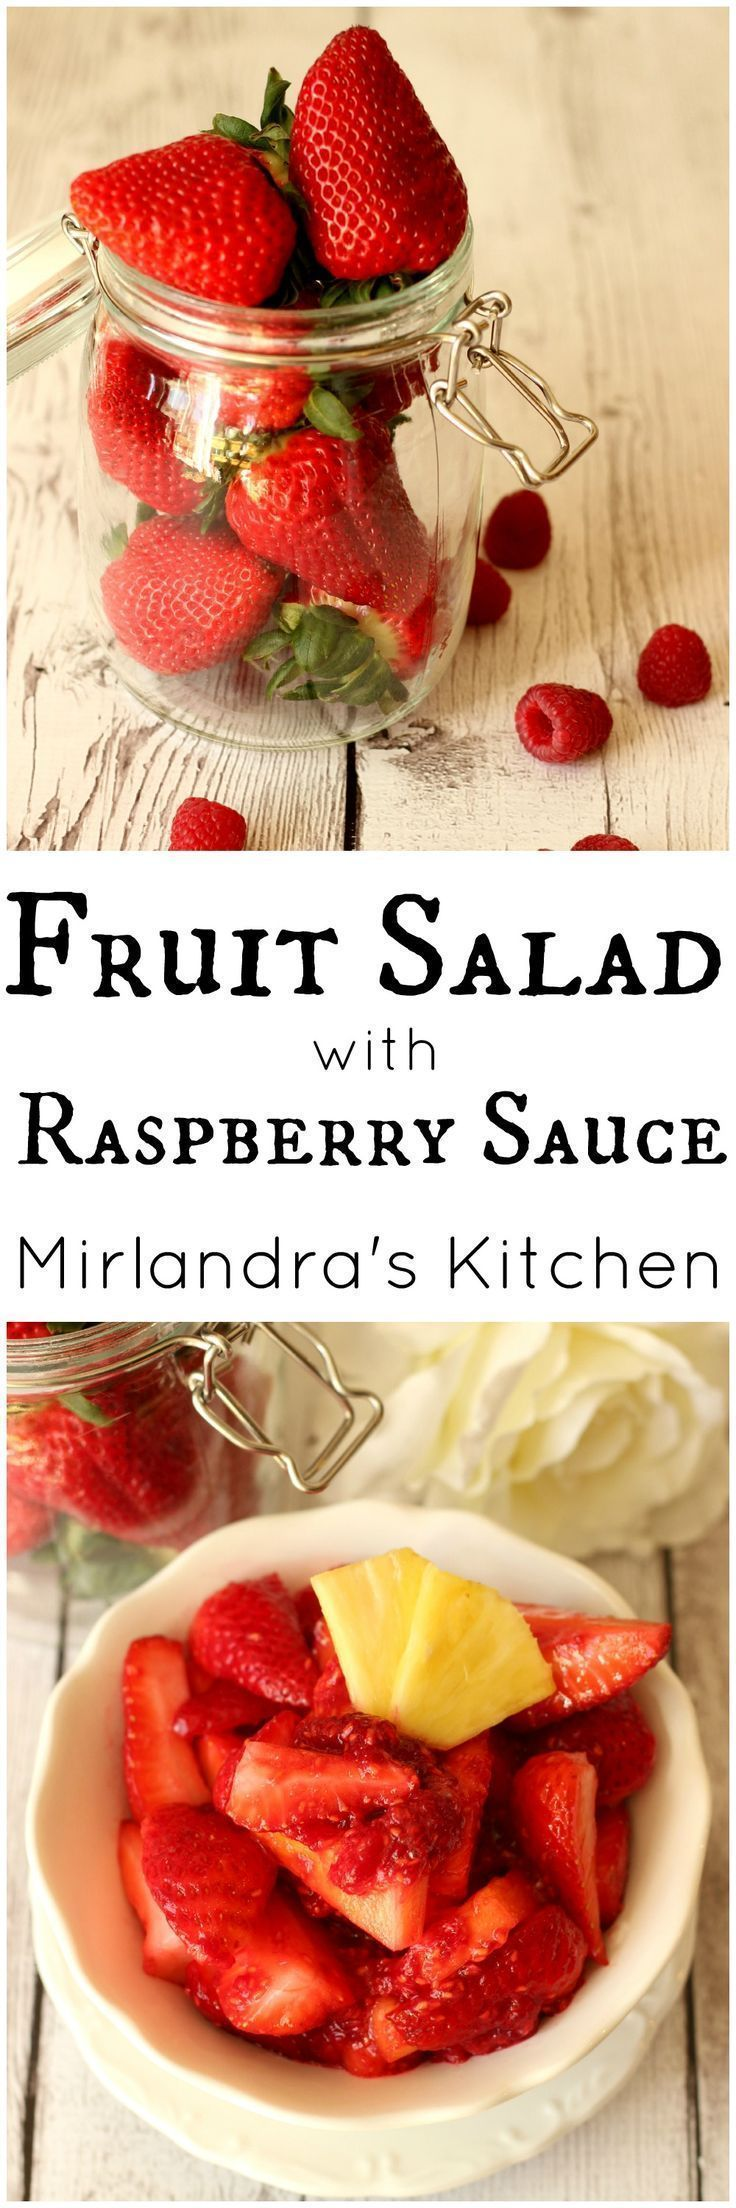 This easy fruit salad is flavorful and unique.  The dressing is made up of nothing but smashed raspberries.  It is the perfect side dish for any occasion. Easter?  Picnic? BBQ? Breakfast with company?  Dessert with or without whipped cream?